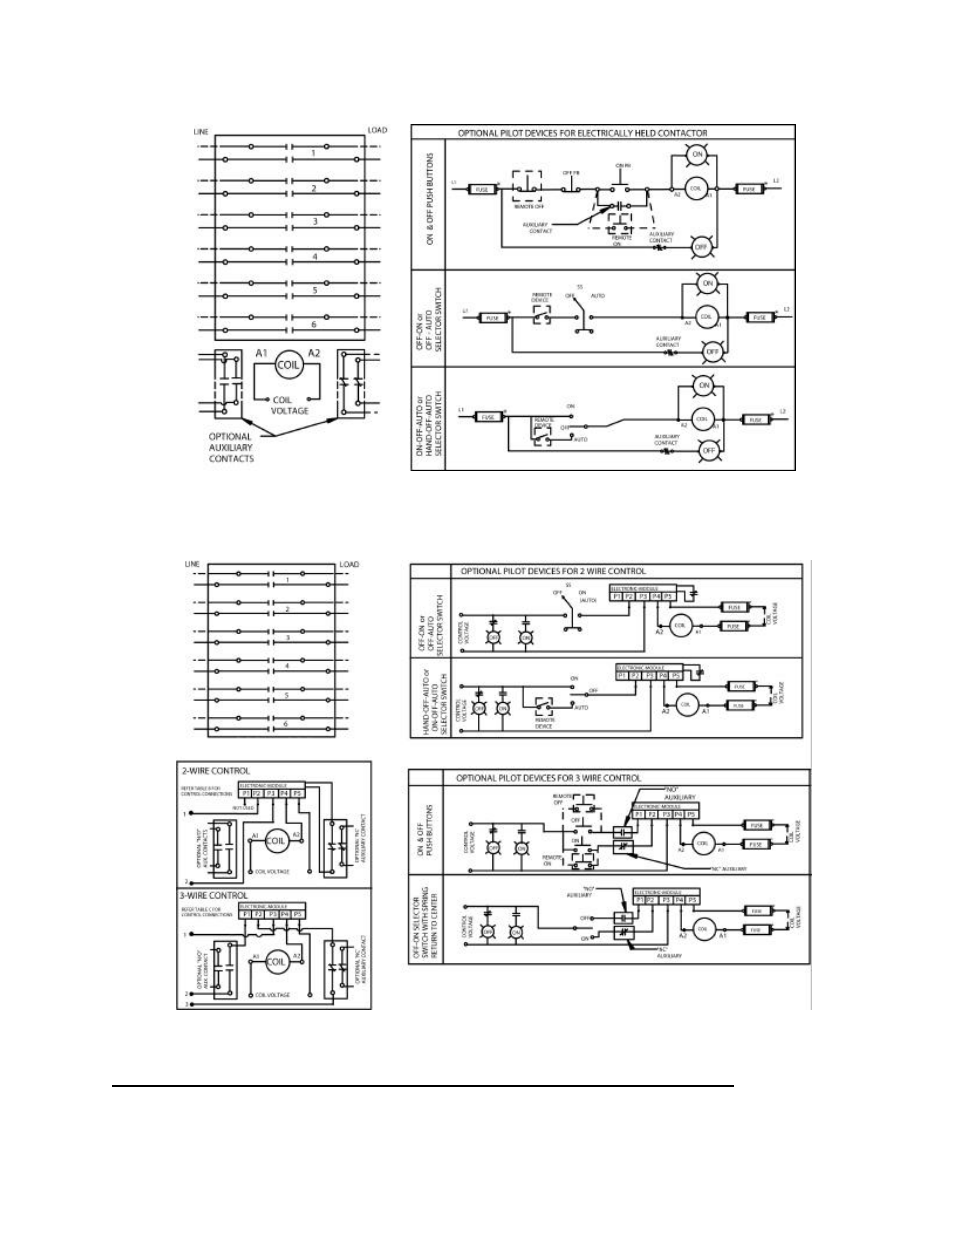 GE Industrial Solutions CR460 LIGHTING CONTACTOR SERIES User Manual | Page  4 / 4